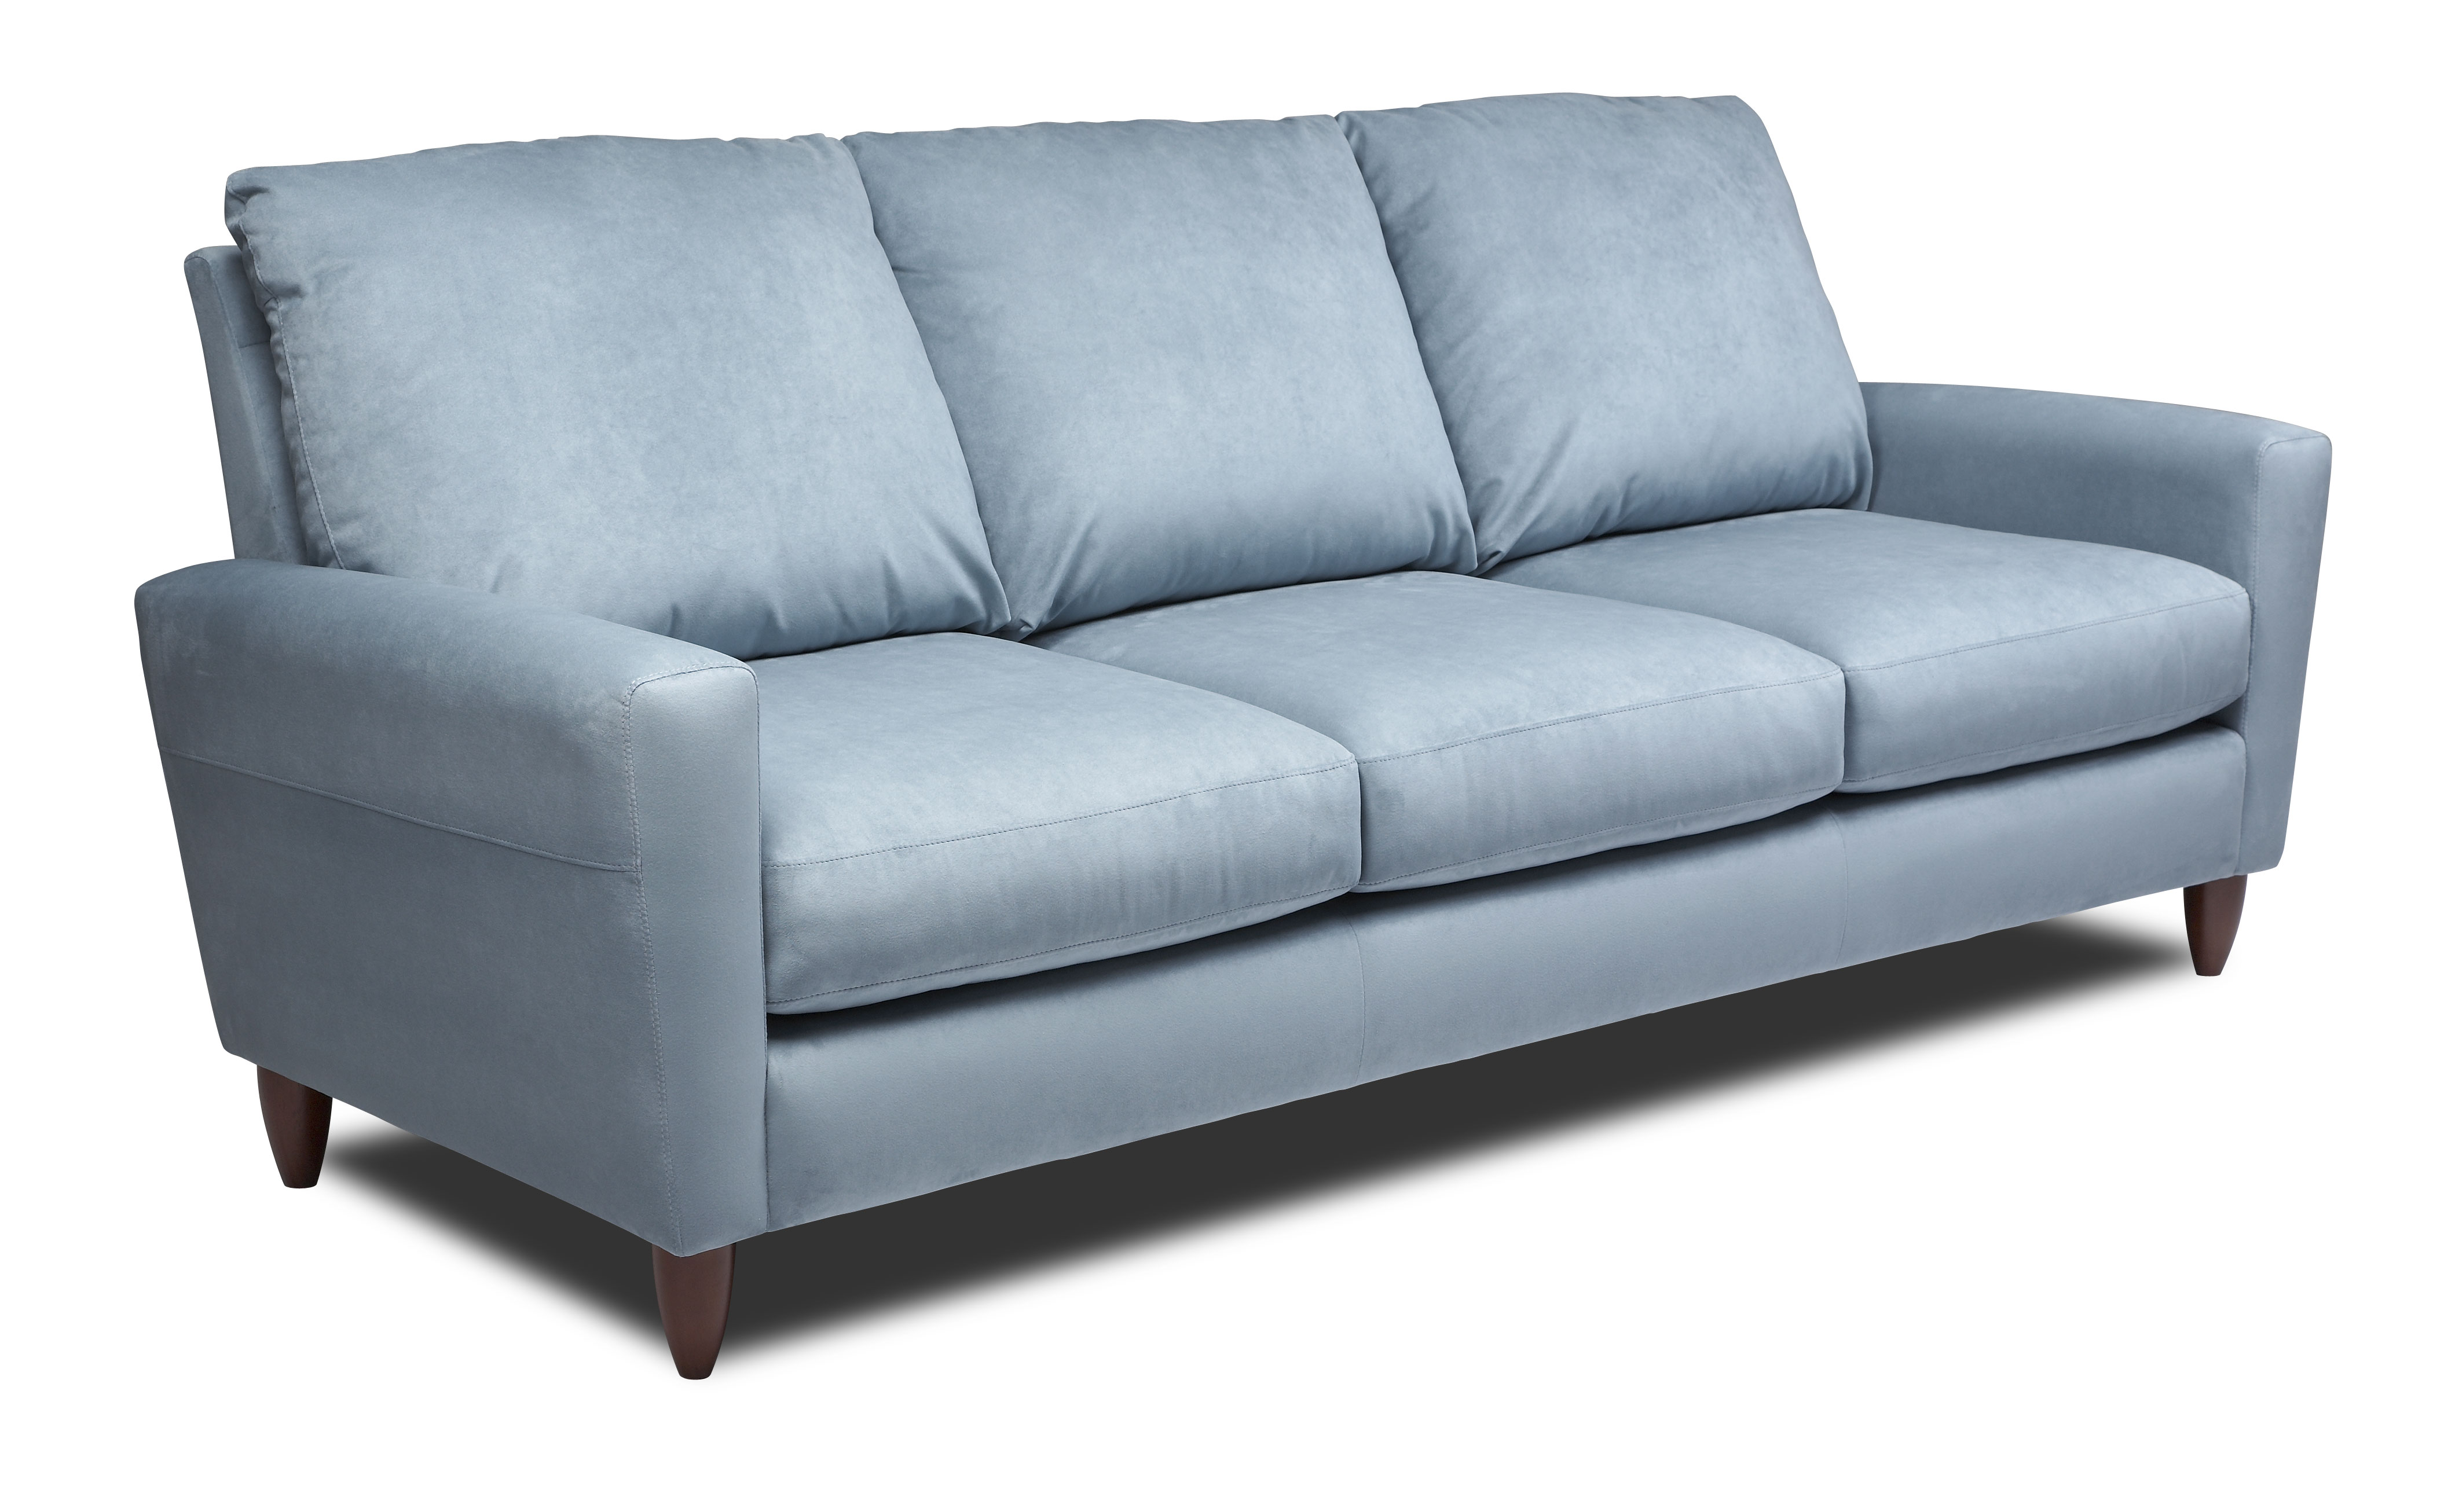 Circle Furniture Bennet Sofa Contemporary Sofas Massachusetts